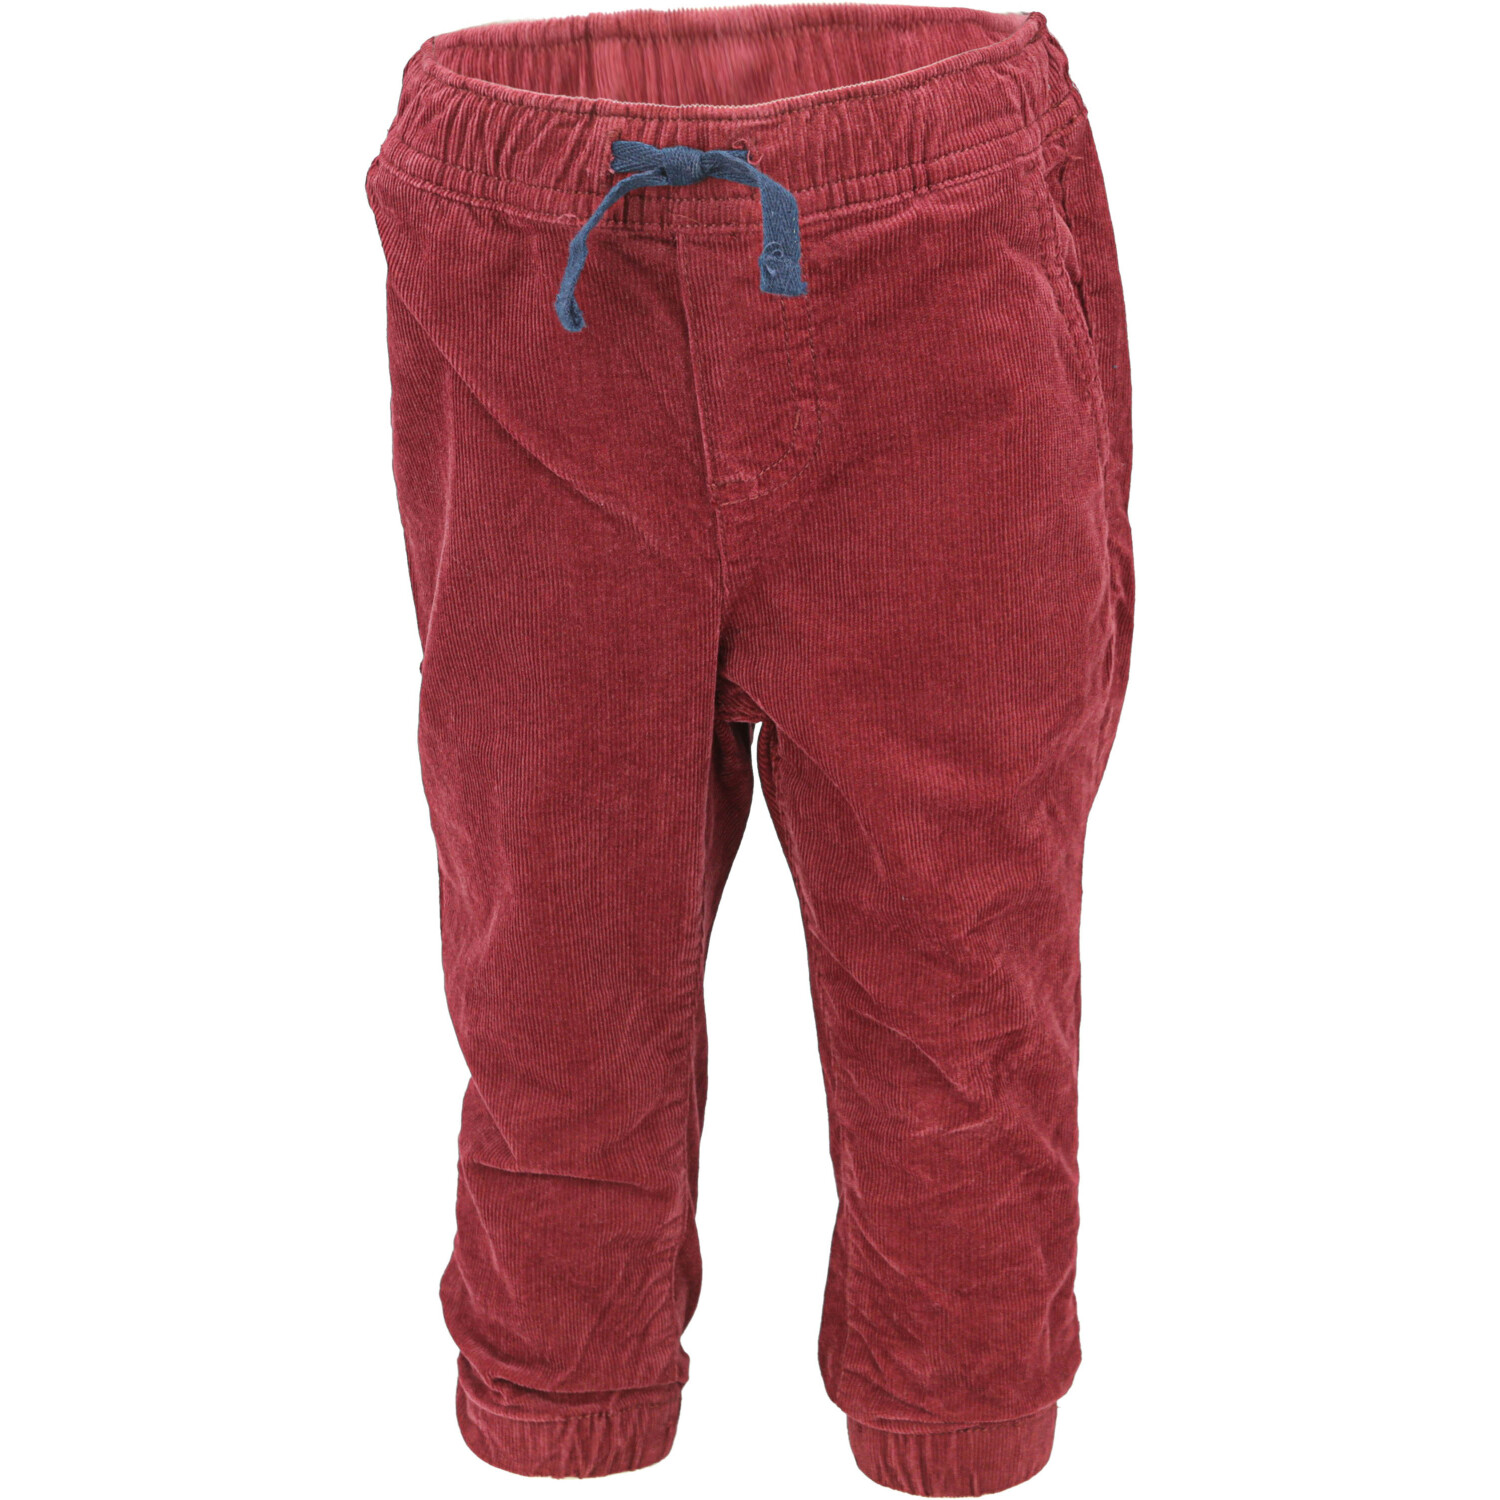 Janie And Jack Boy's Maroon Stretch Corduroy Jogger Pants - 18-24 Months